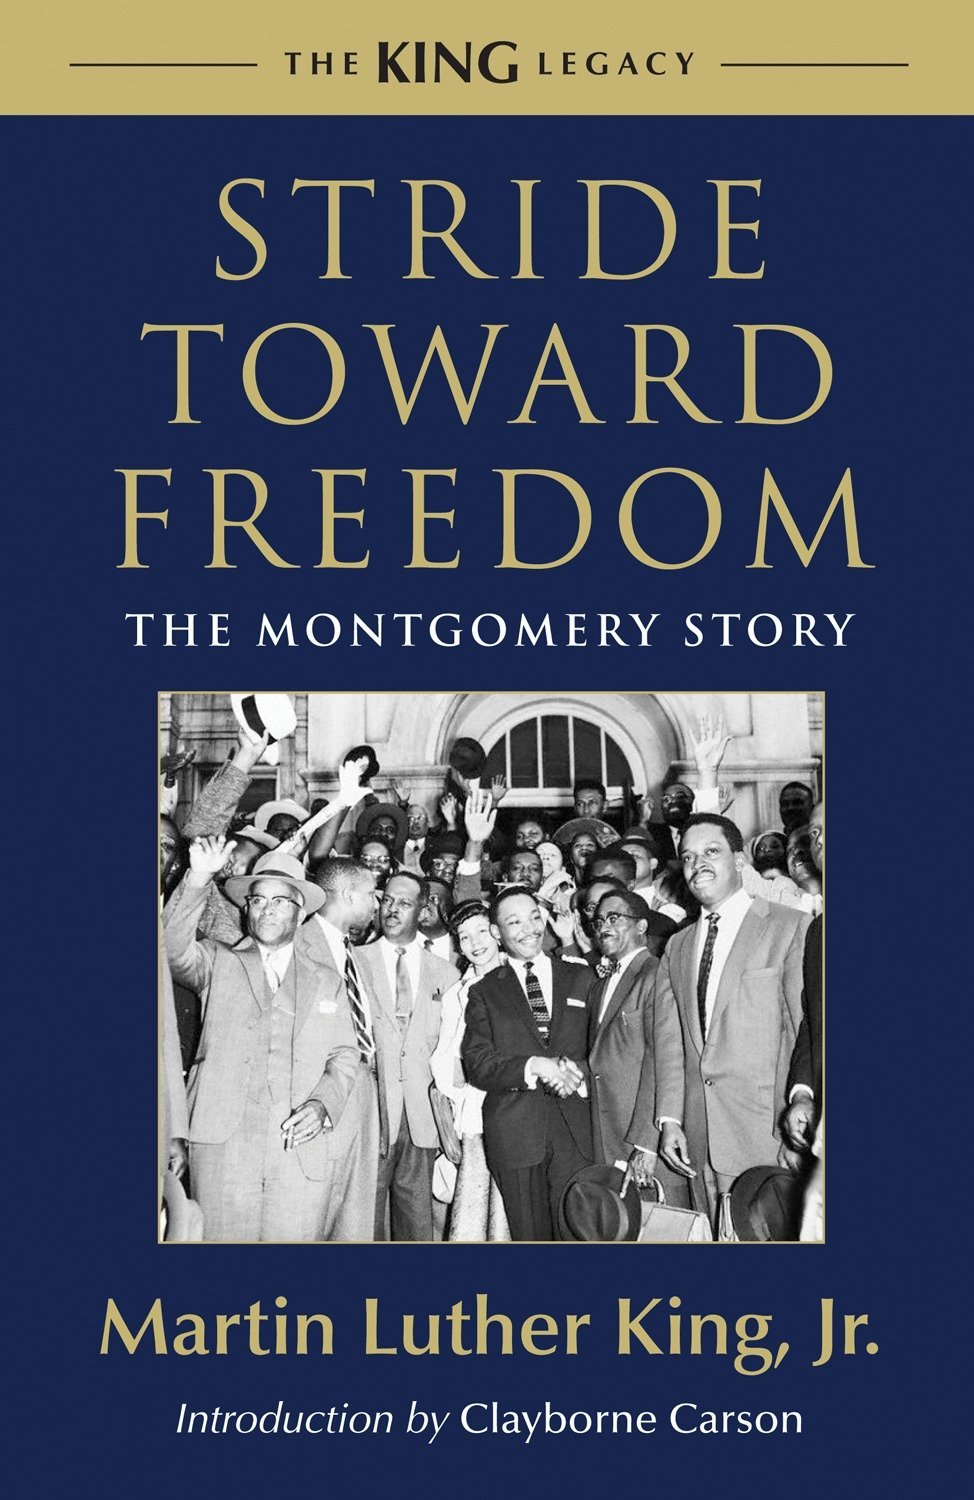 Download Stride Toward Freedom: The Montgomery Story (King Legacy) PDF